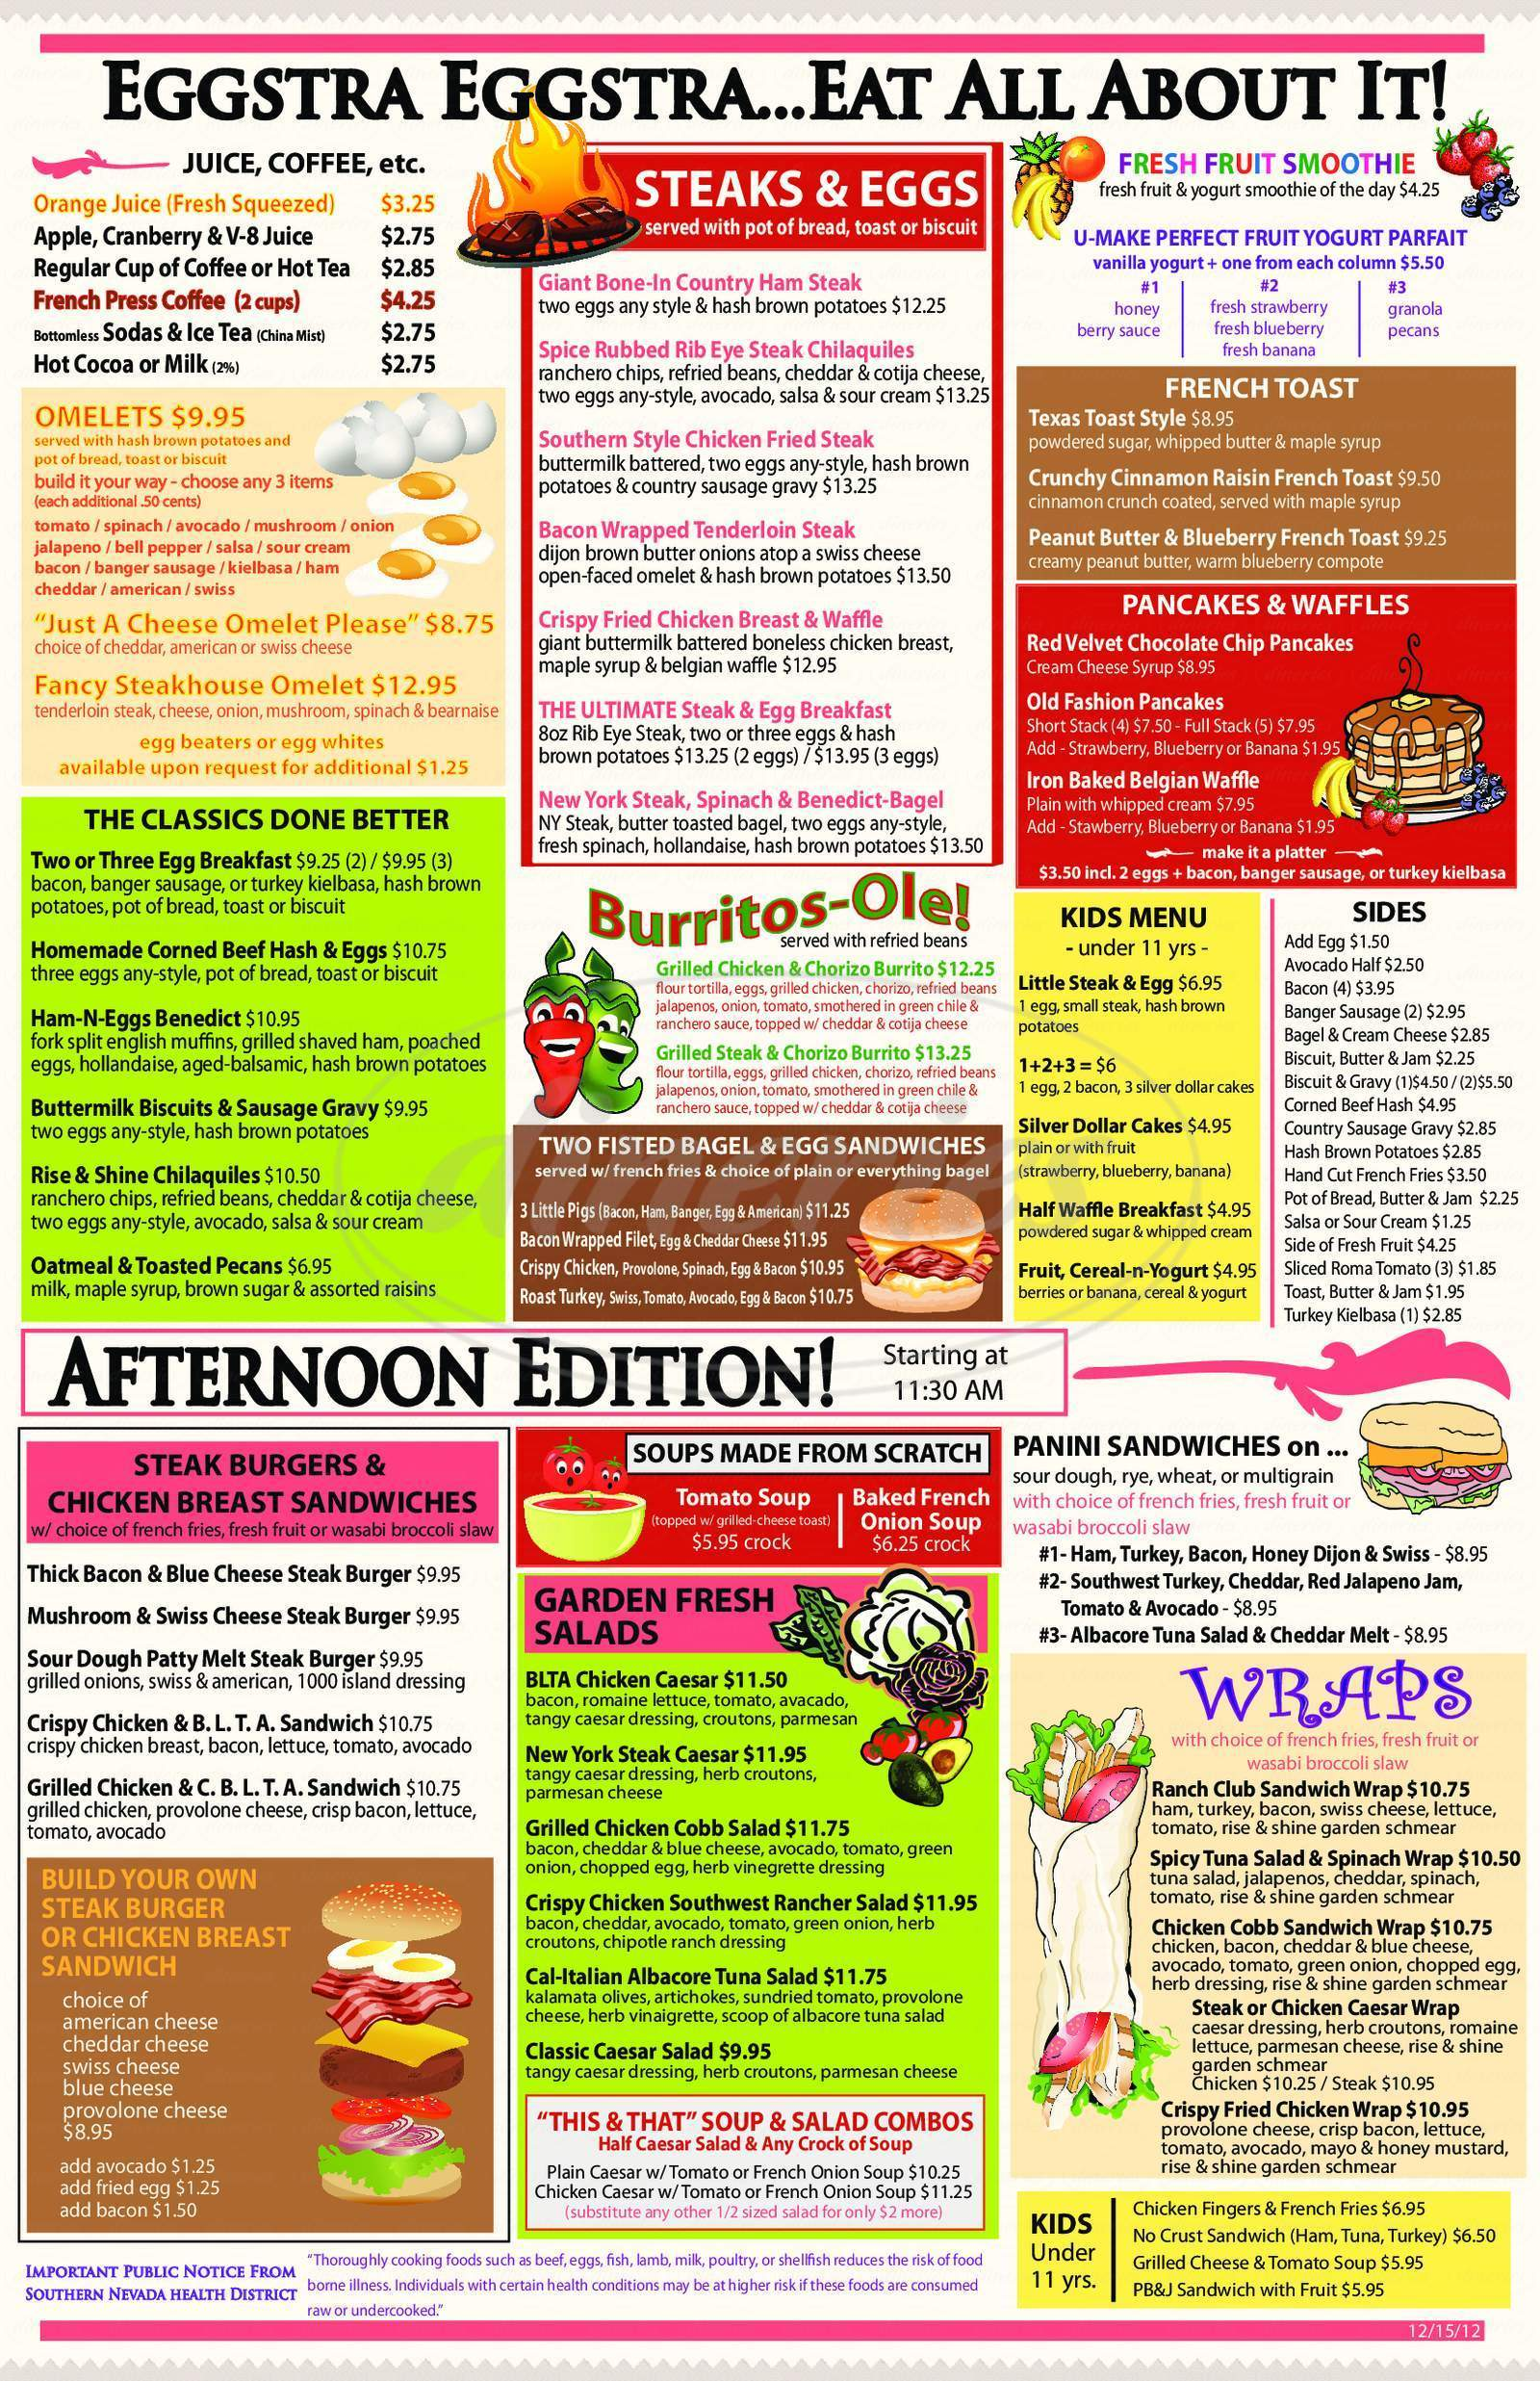 menu for Rise & Shine, a Steak & Egg Place